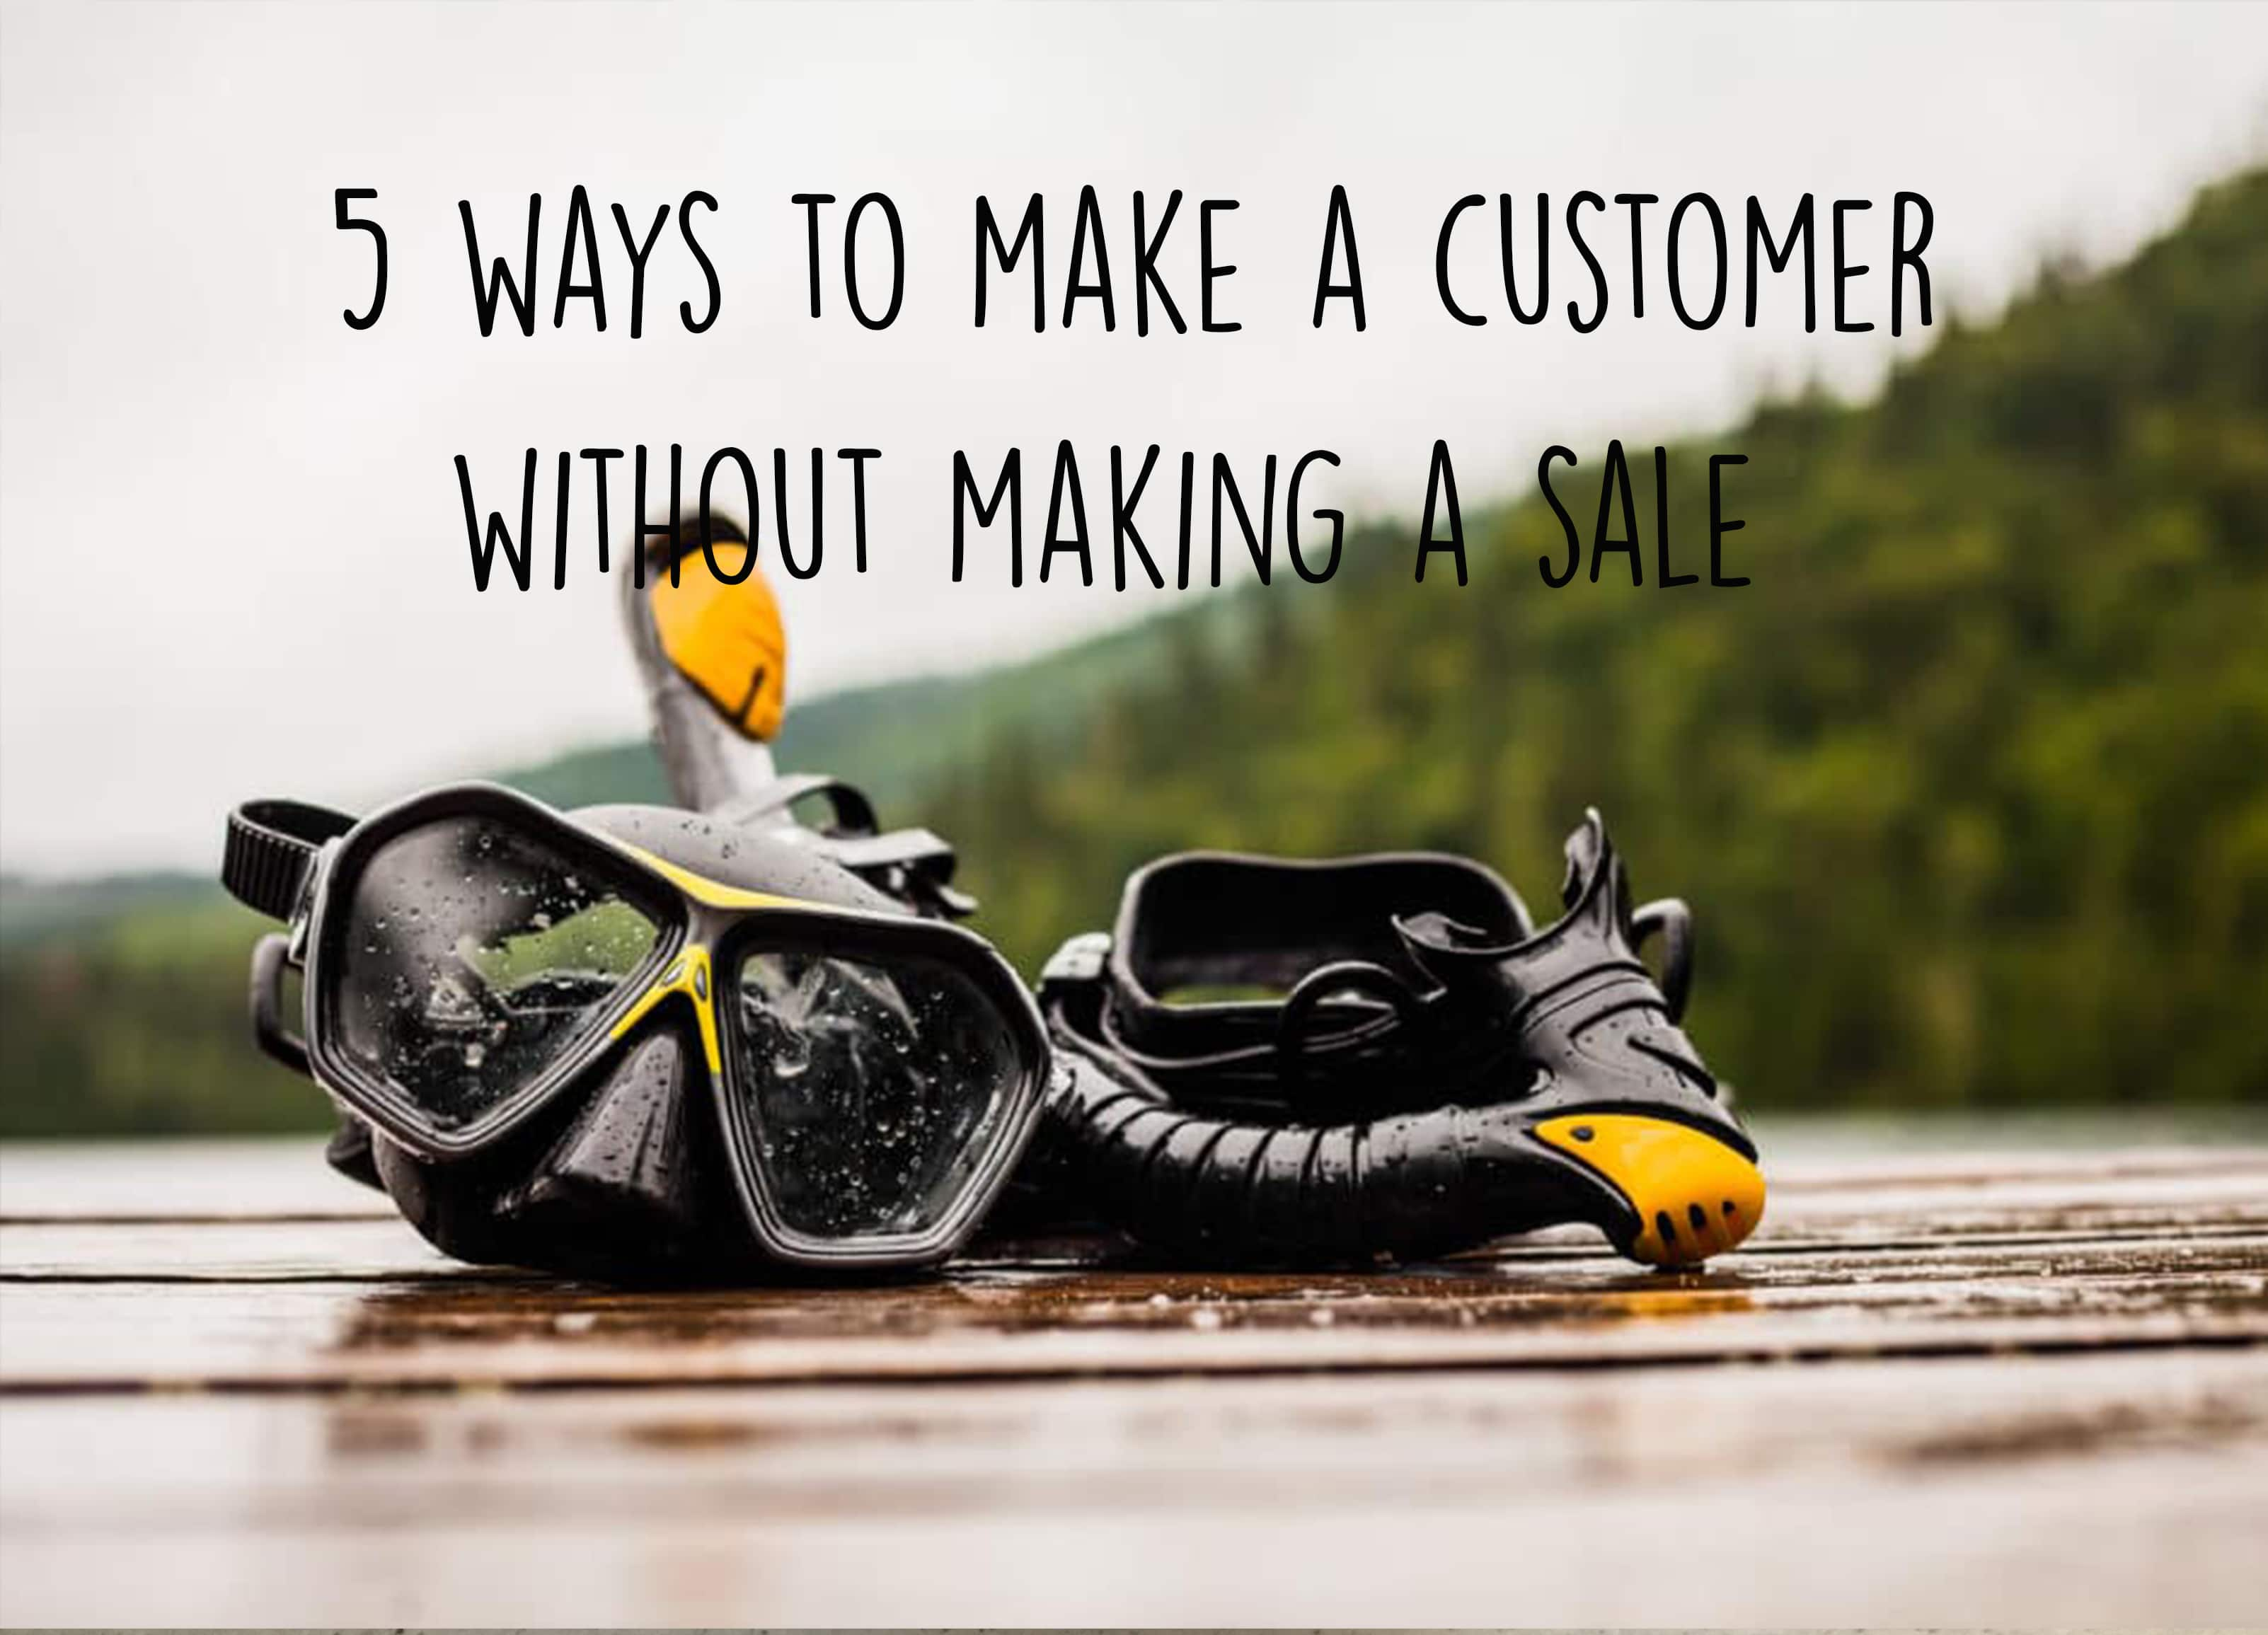 5 Ways to make a customer by not making a sale